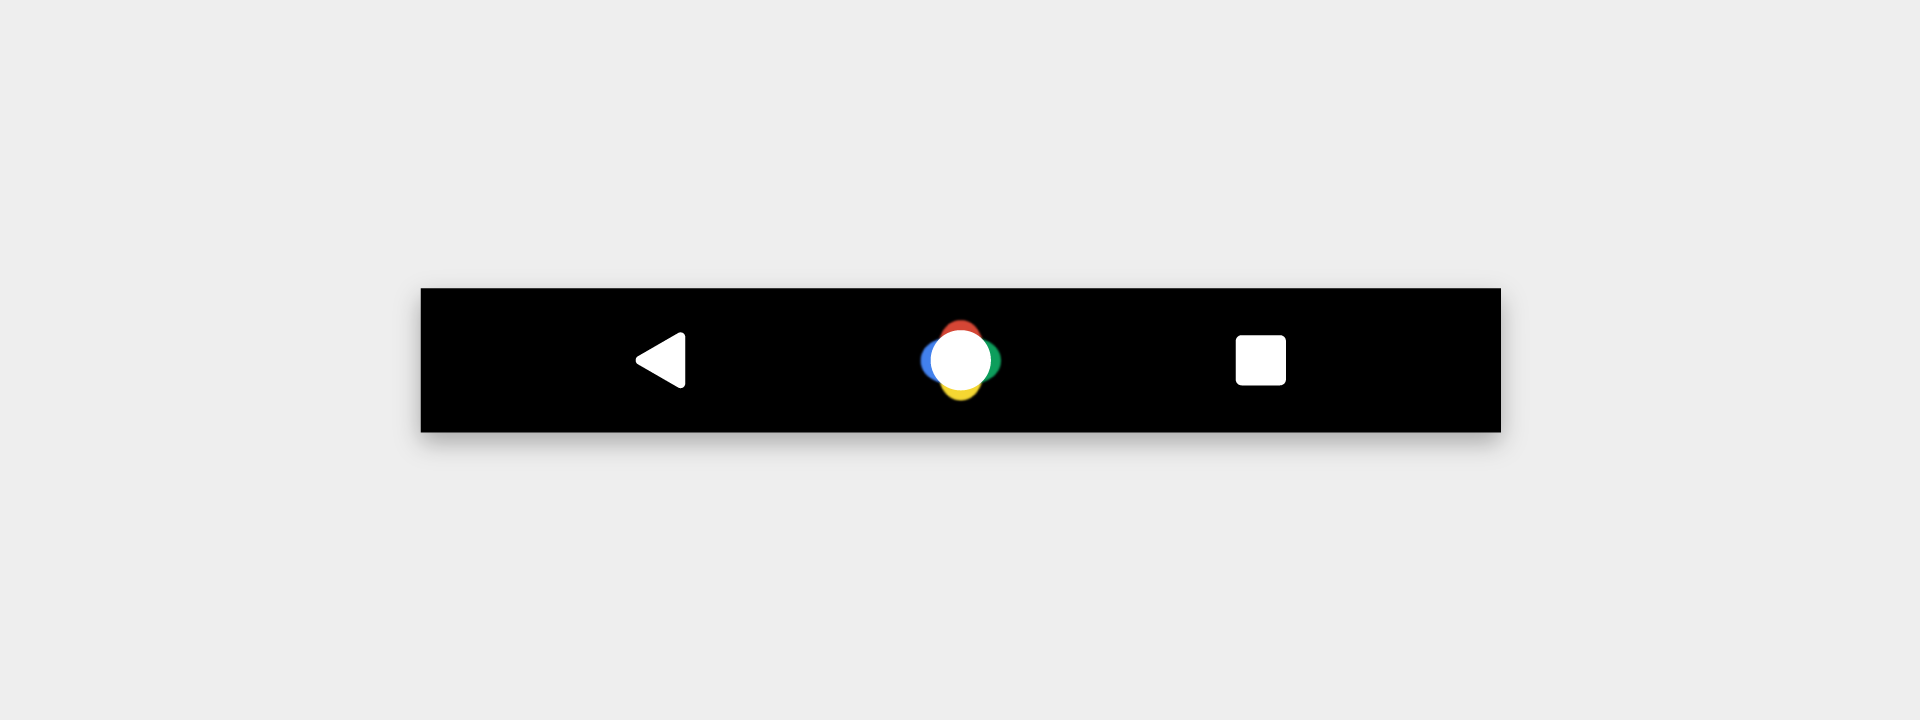 Exclusive: Google may be redesigning Android's home and